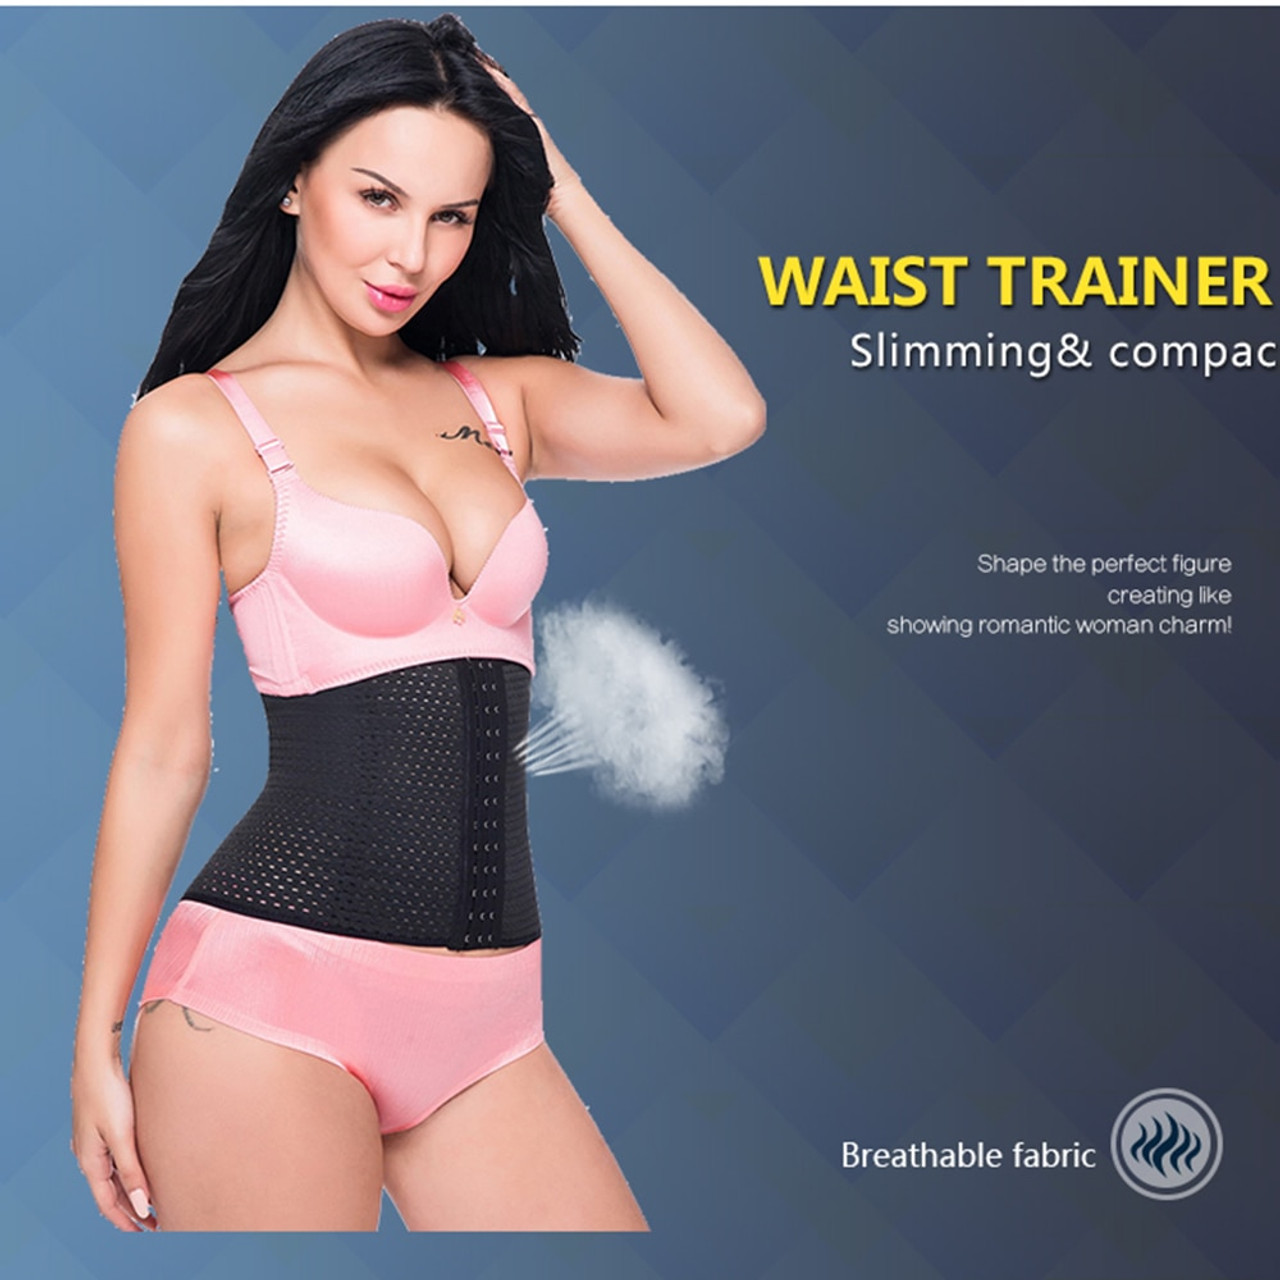 cab3899164 ... Miss Moly Waist trainer hot shapers waist trainer corset Slimming Belt Shaper  body shaper slimming modeling ...